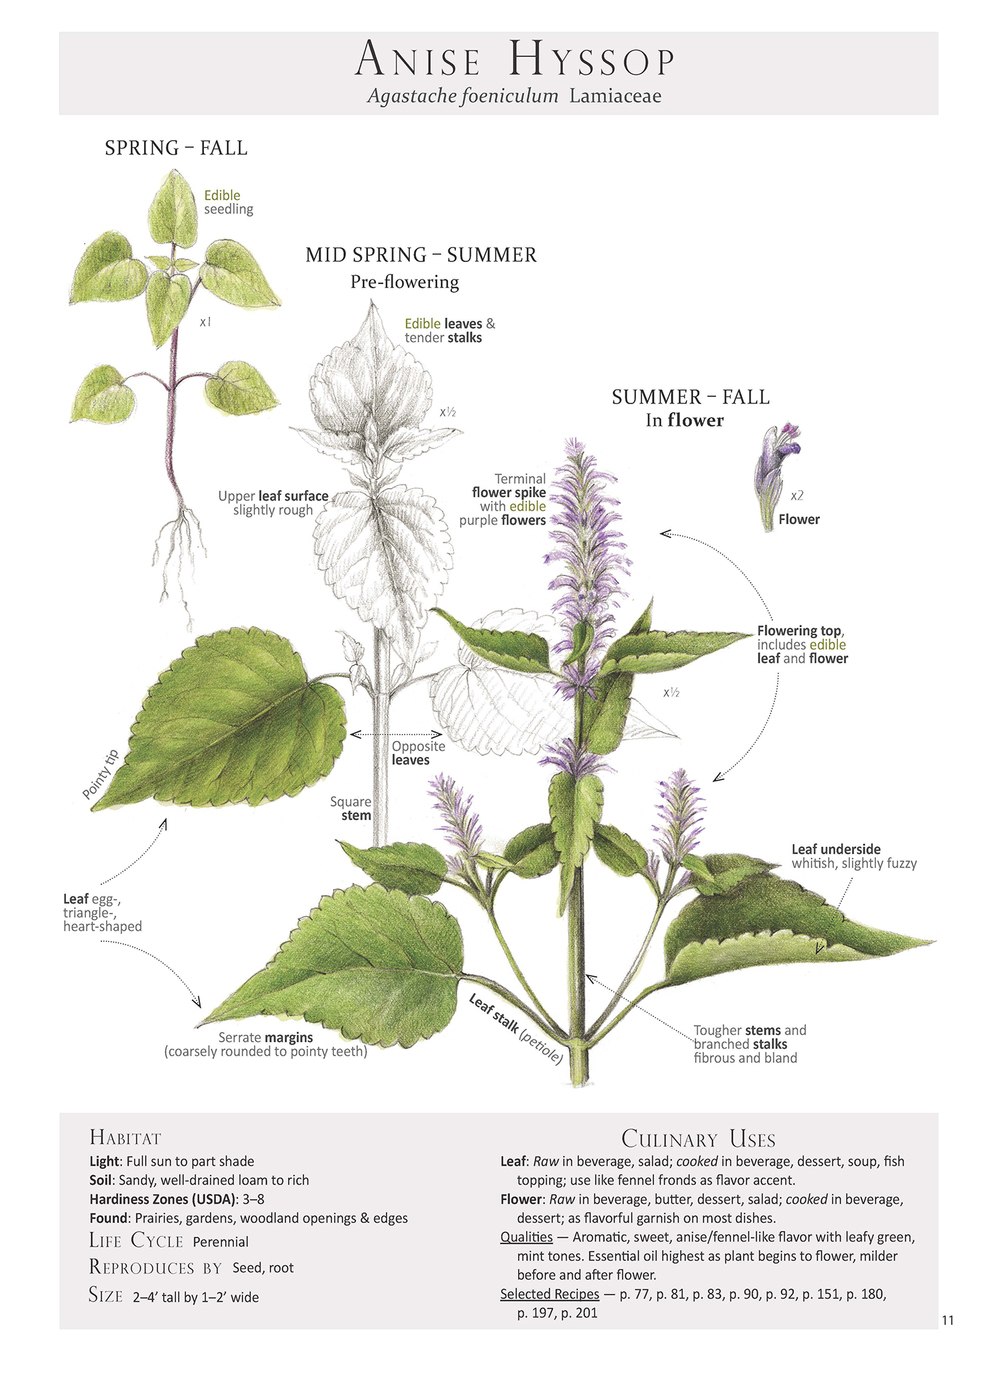 Plant Identification page from Foraging & Feasting: A Field Guide and Wild Food Cookbook by Dina Falconi; illustrated by Wendy Hollender  http://bit.ly/1Auh44Q